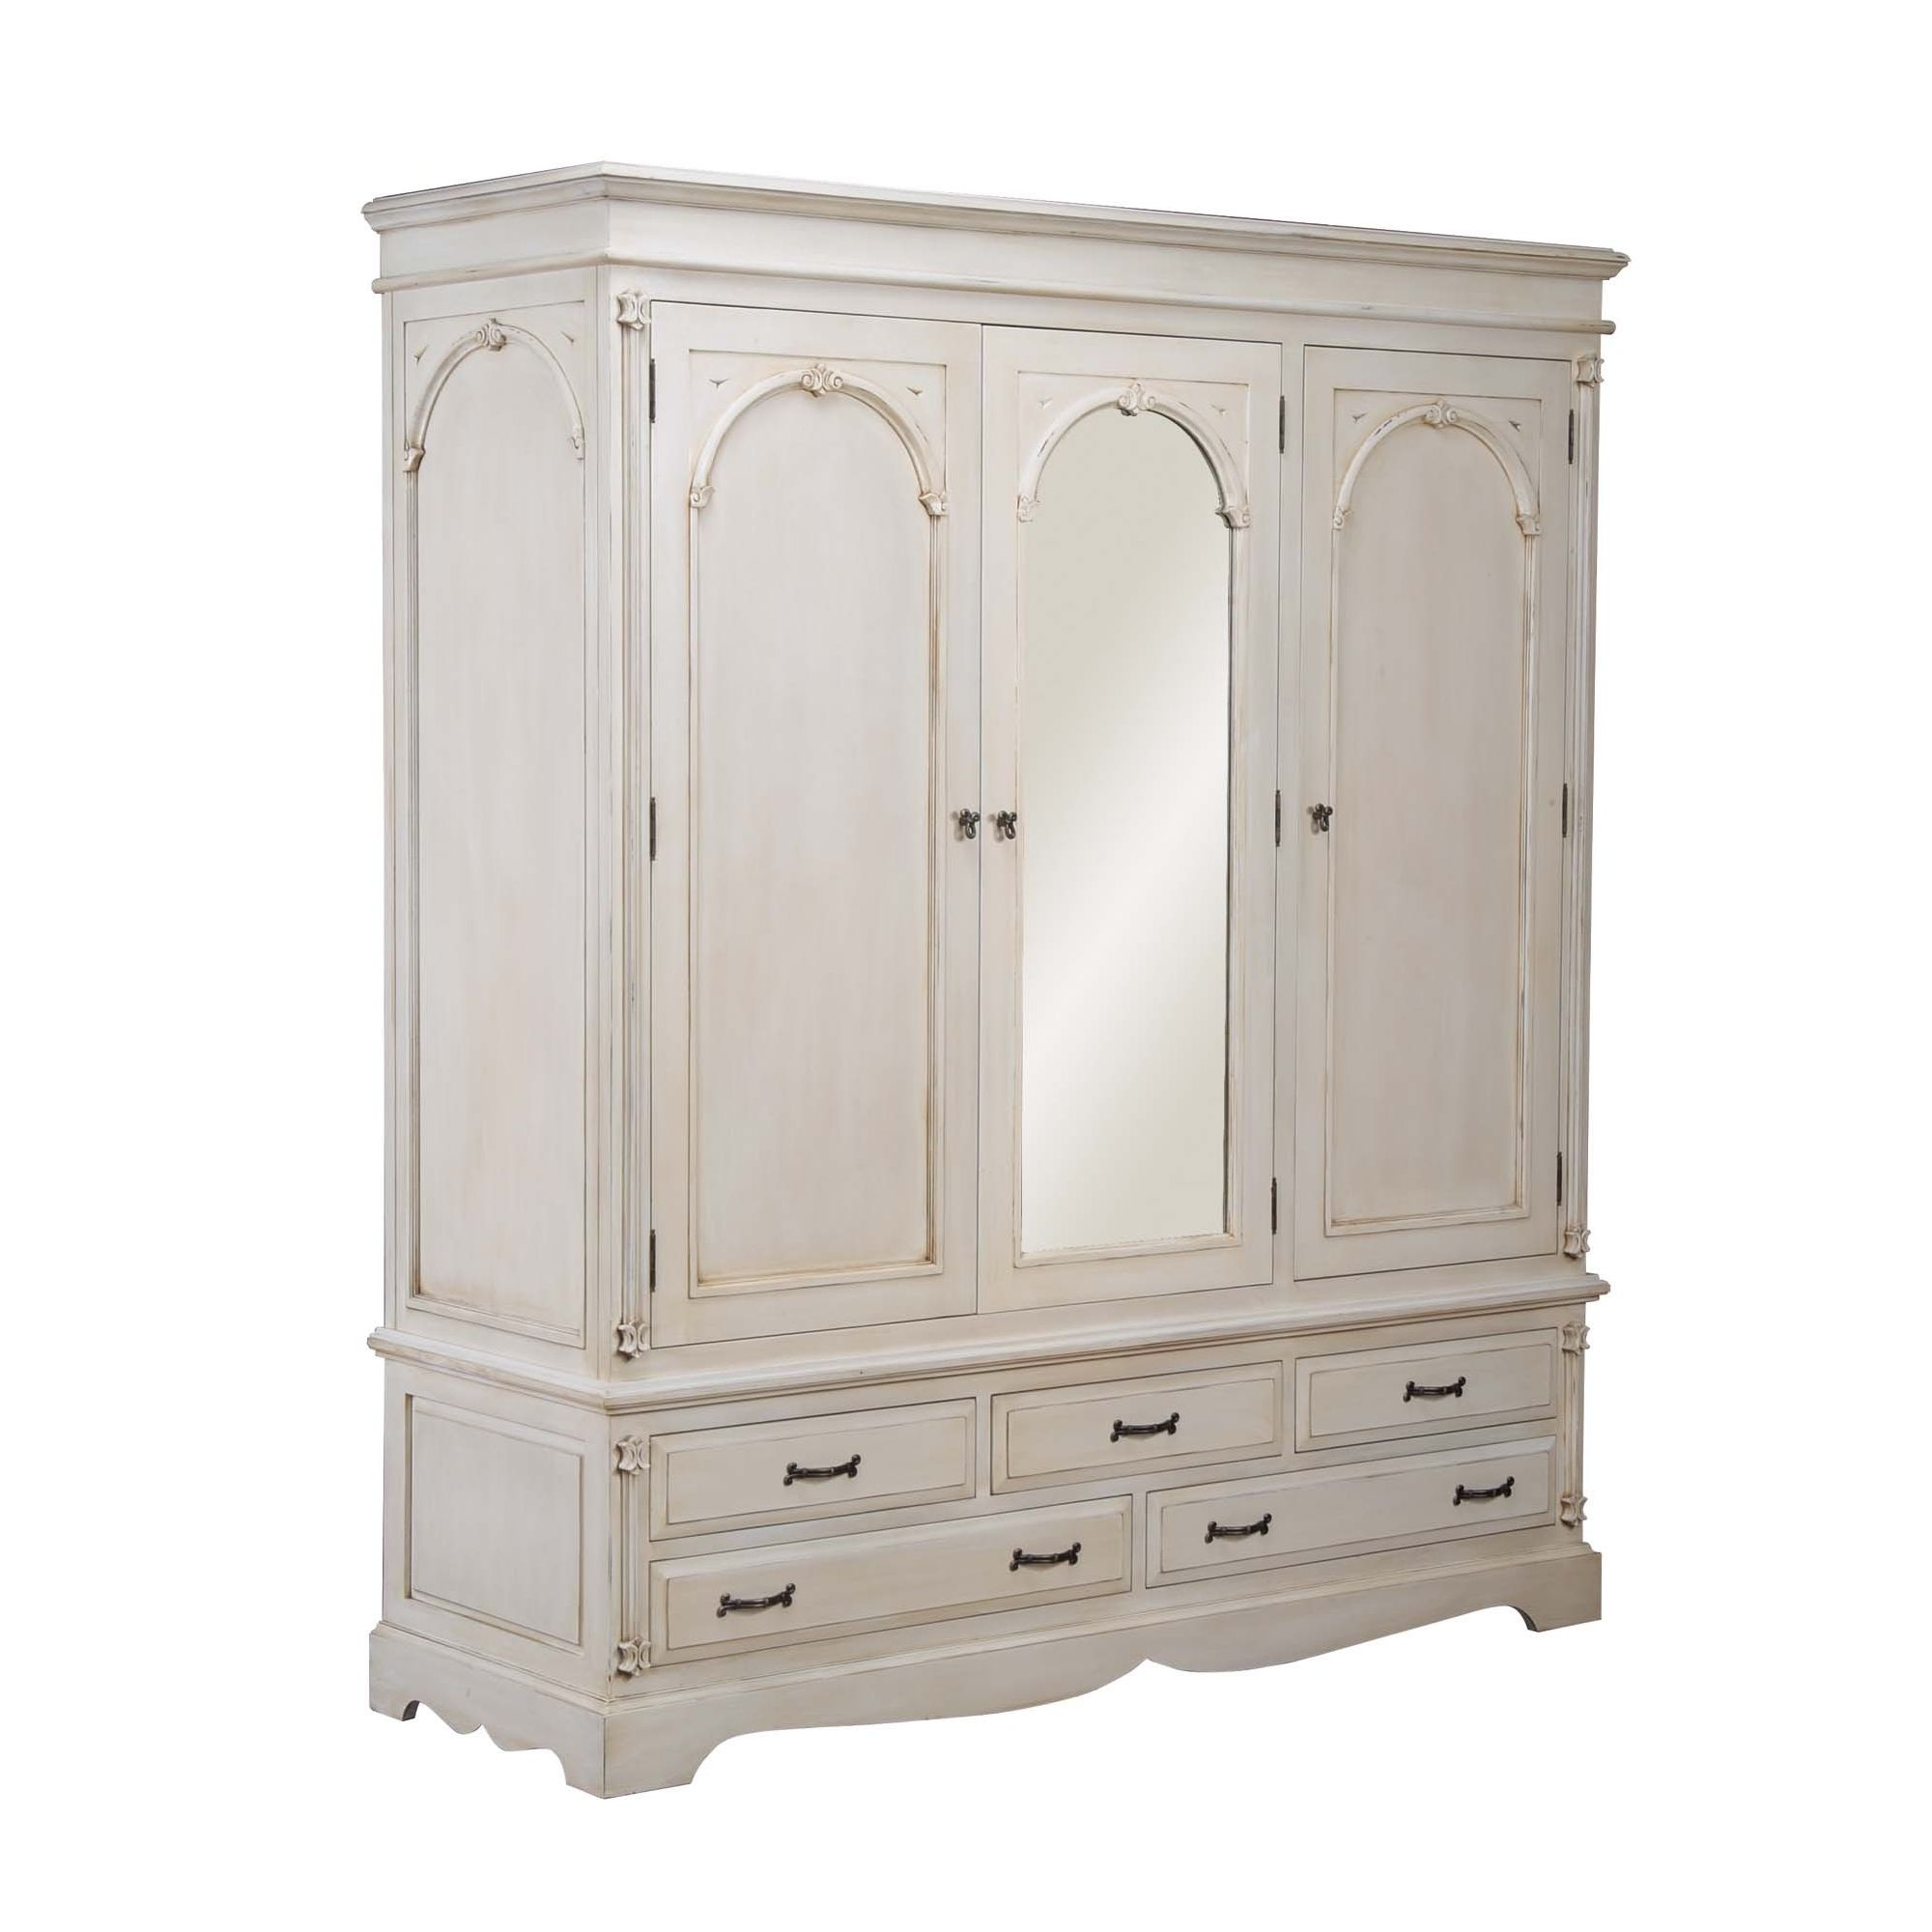 Thorndon Beverley Distressed Triple Wardrobe in Distressed Ivory at Tesco Direct